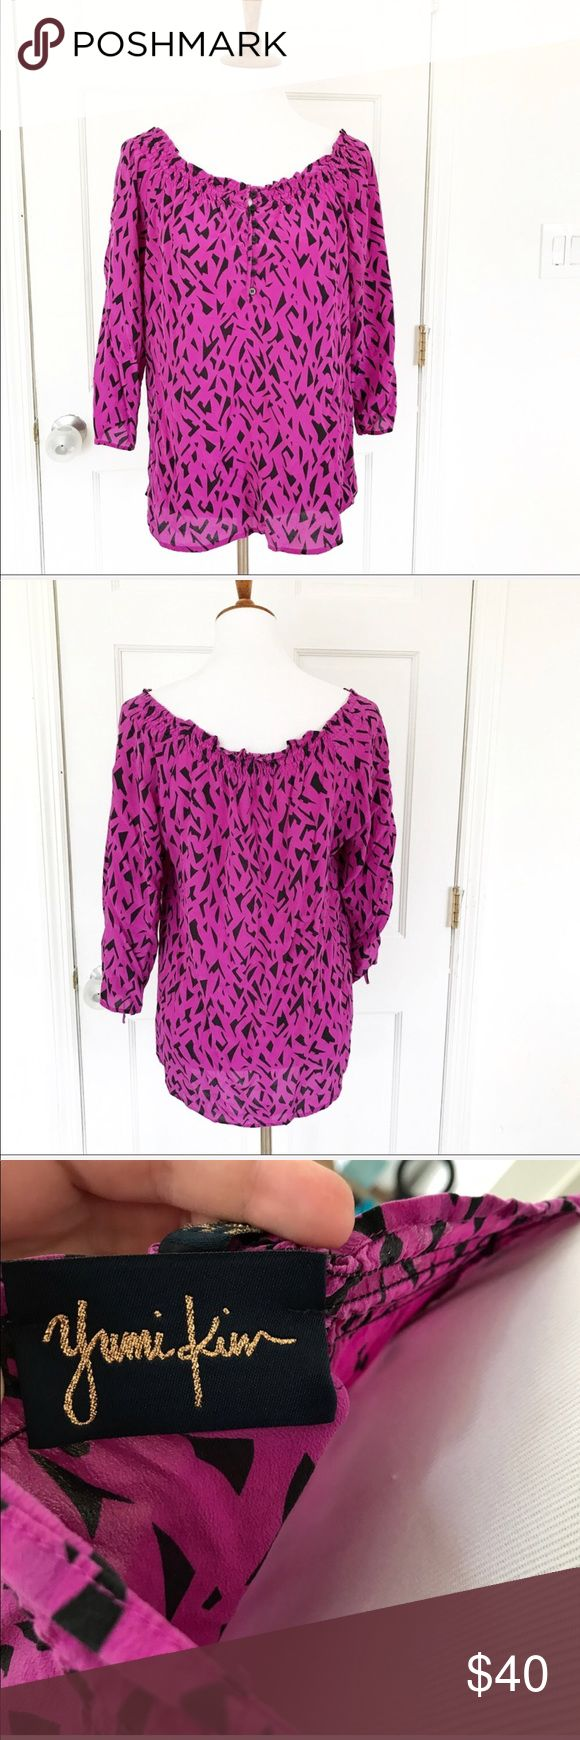 Yumi Kim smock neck henley silk blouse Beautiful silk top by Yumi Kim. Can be worn off the shoulders. Purple with black geometric pattern. Size small but blousey. Black buttons on the front and sleeves. No flaws. ✅ Offers welcome. Yumi Kim Tops Blouses